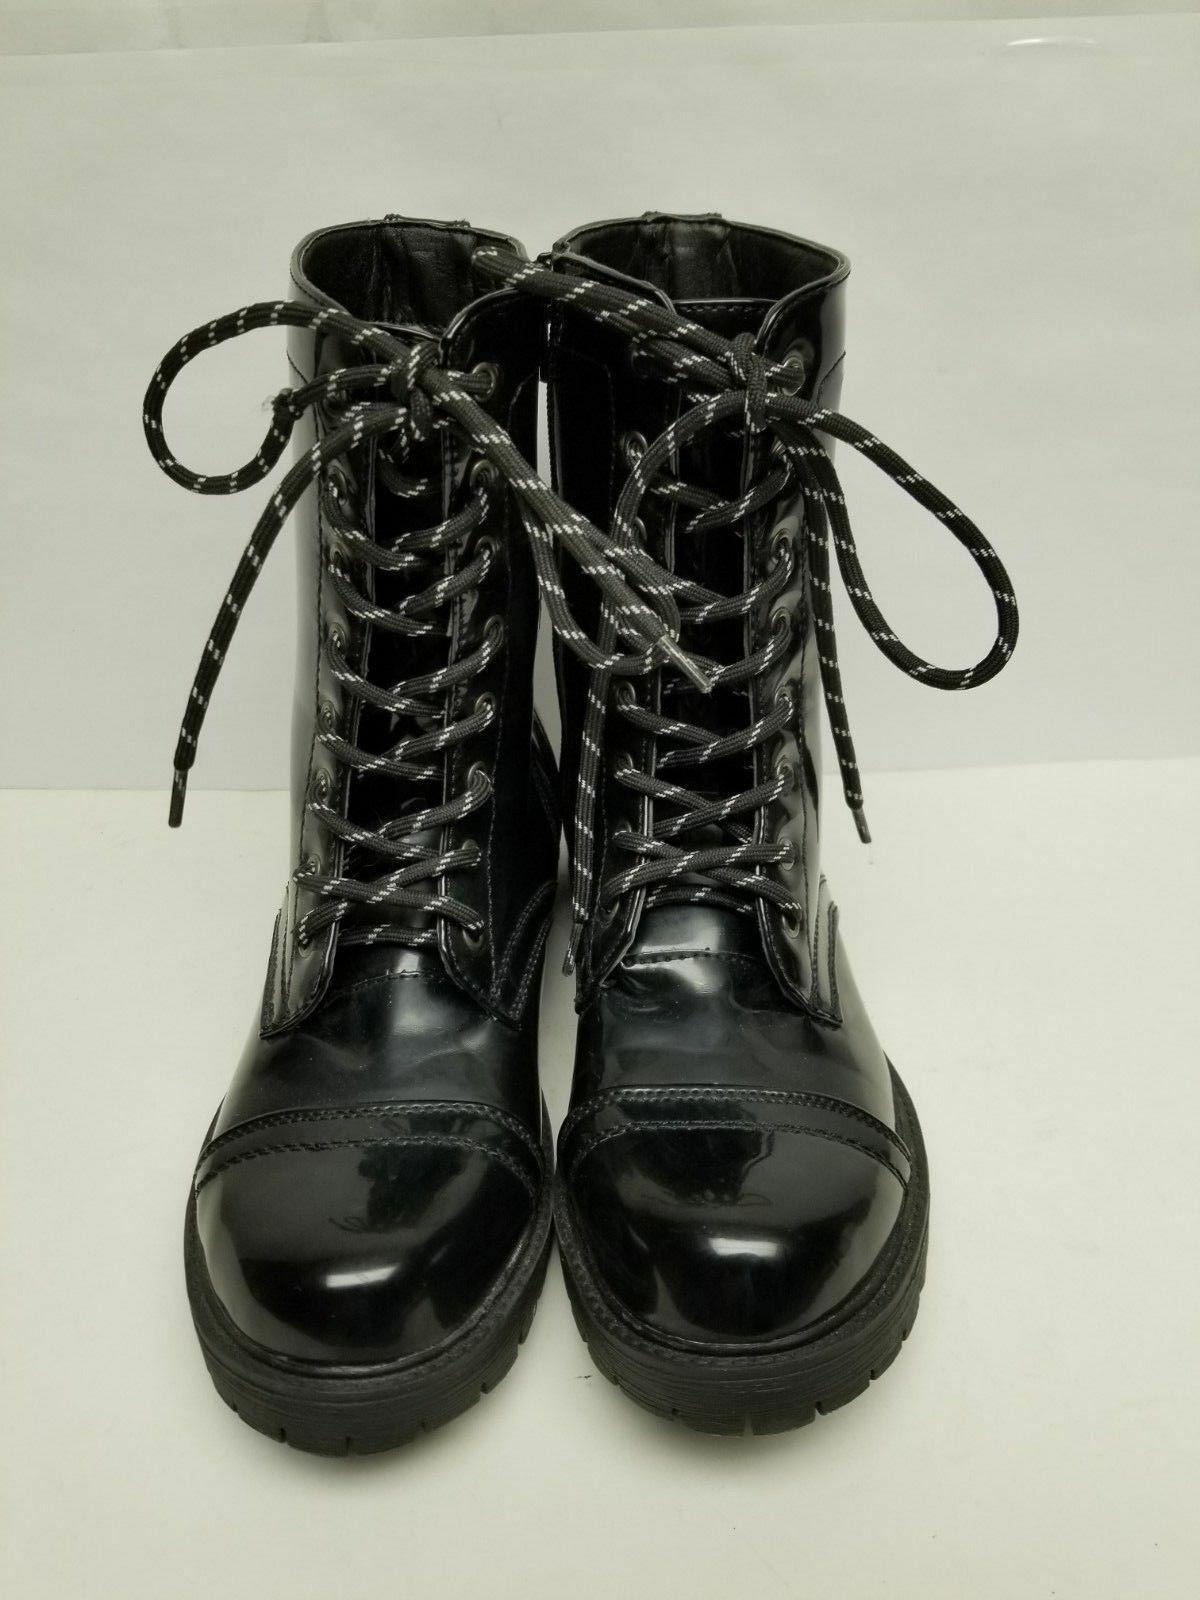 NEW! Women's MADDEN BLACK BOOTS Side-Zip with 7.5